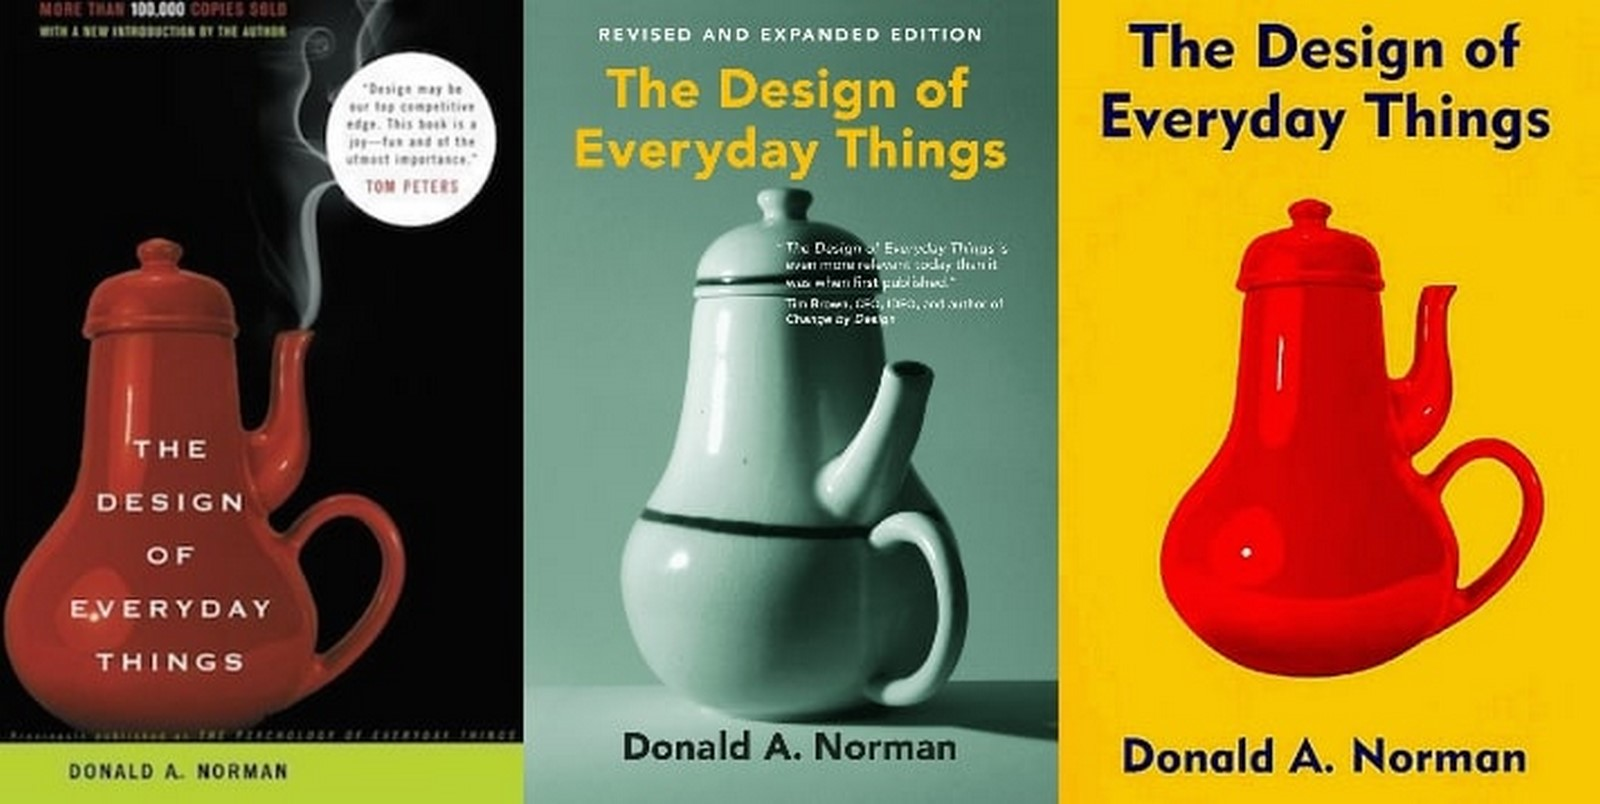 10 Books related to Product Design everyone should read Sheet7